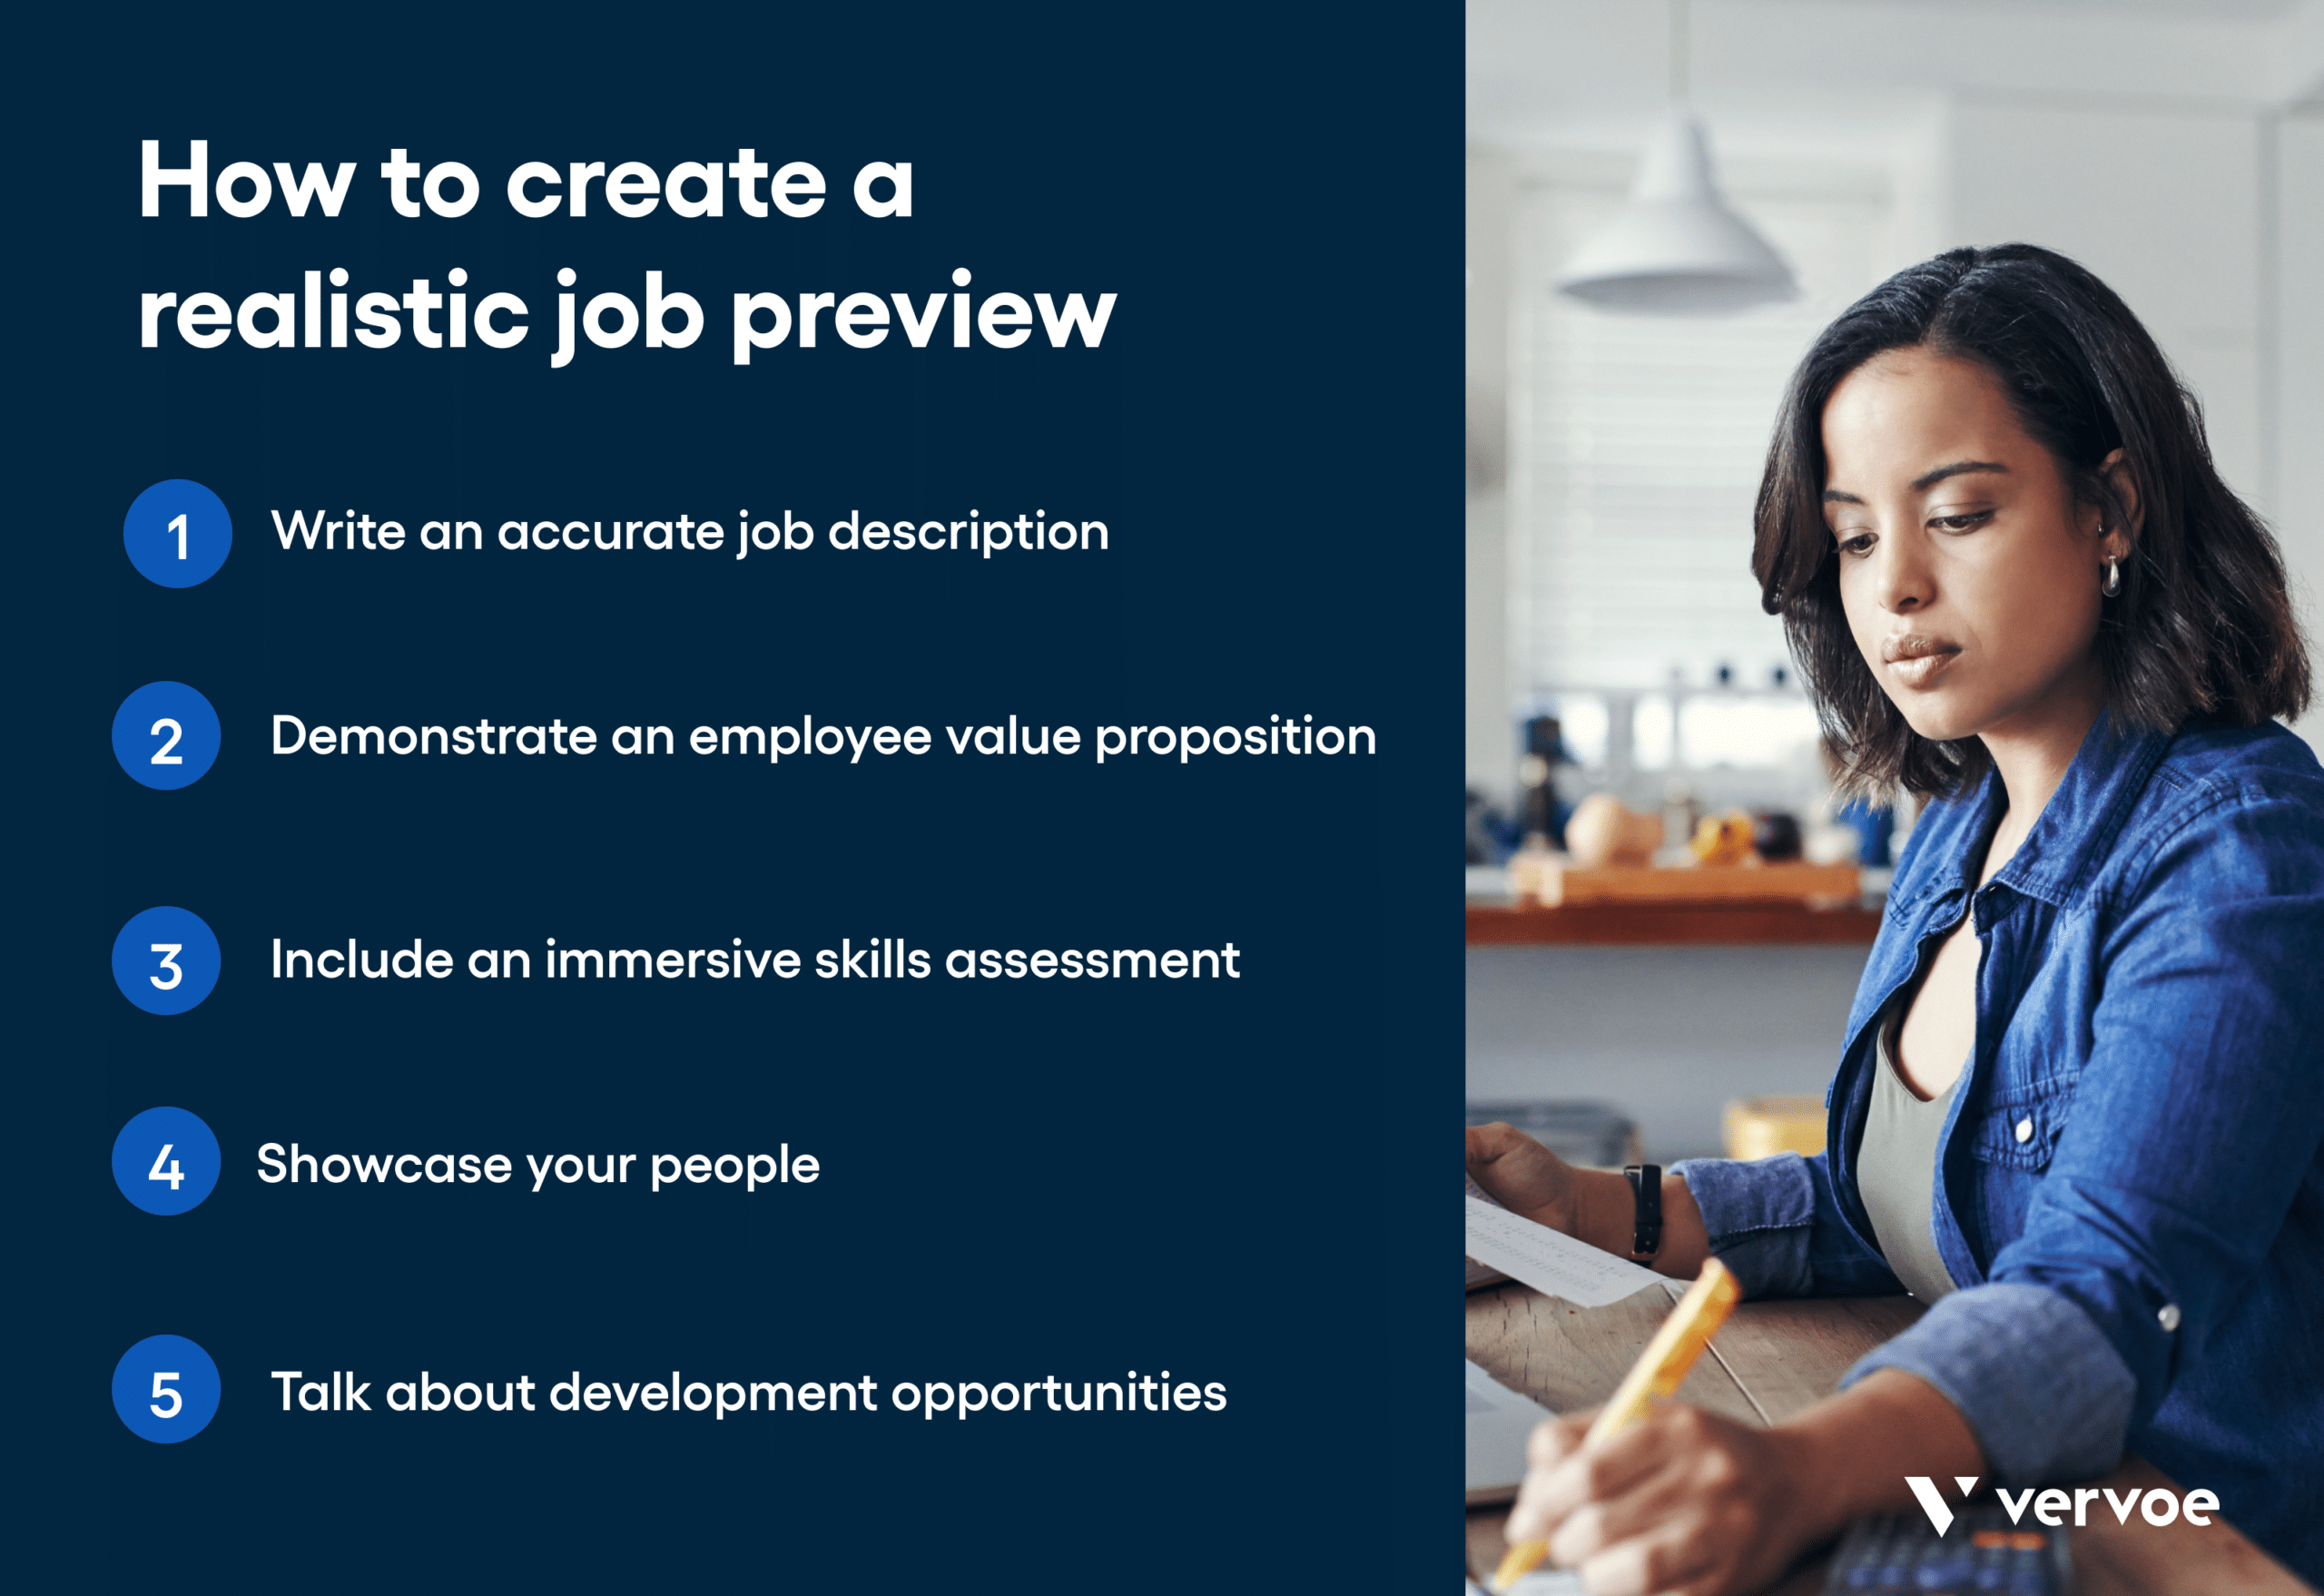 Infographic showing the 5 steps of creating a realistic job preview